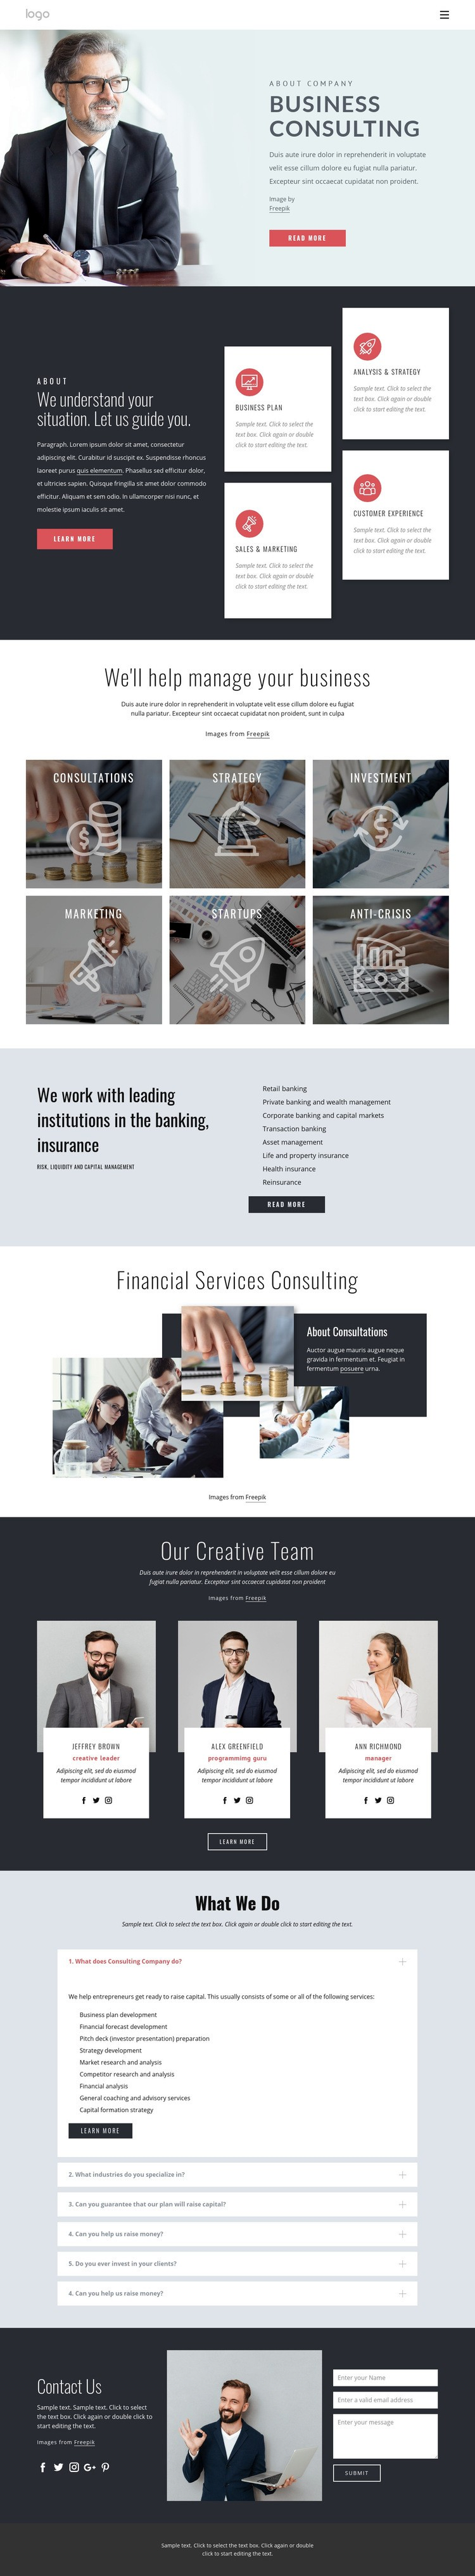 Successful financial strategy Html Code Example